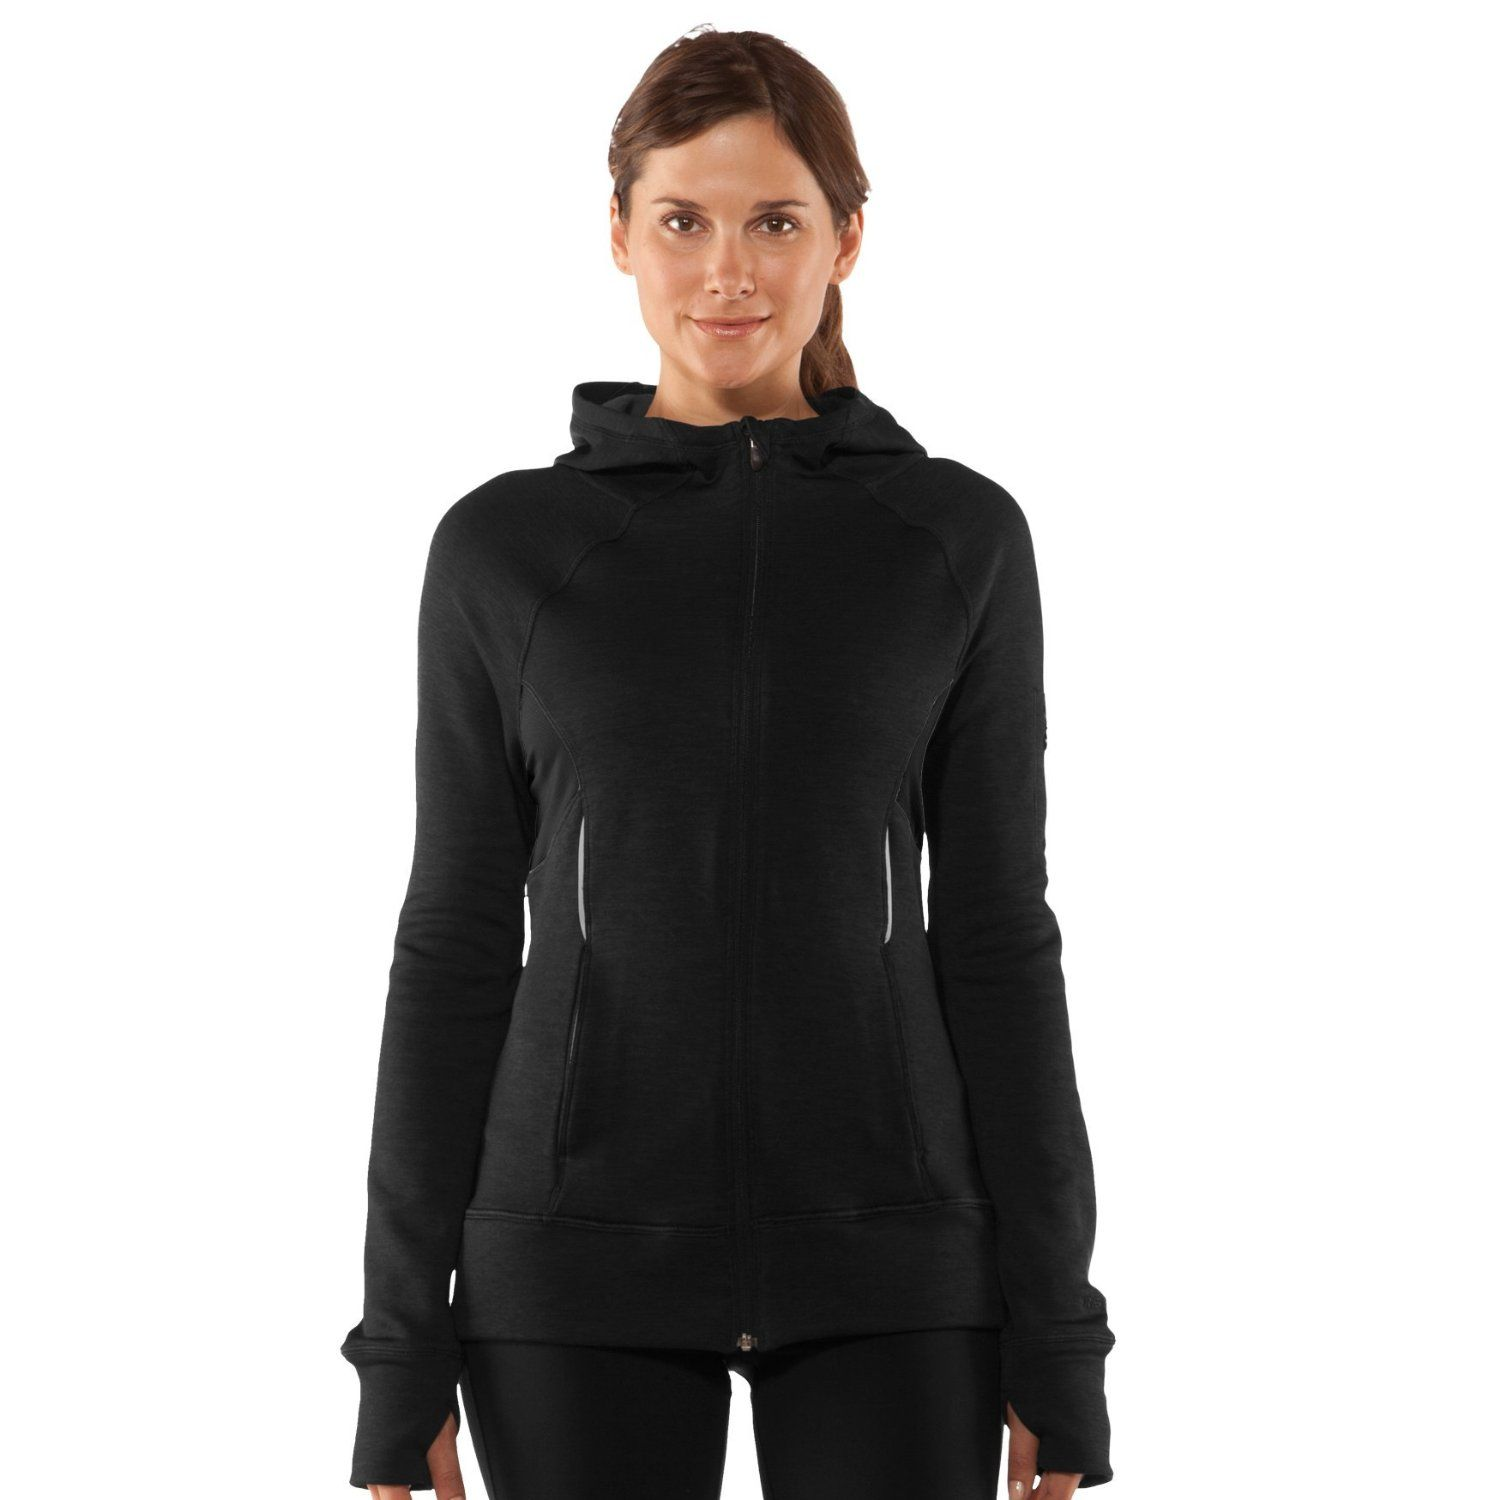 Womens UA Storm Fleece Full Zip Tops by Under Armour Medium Black ... 84be6a1341